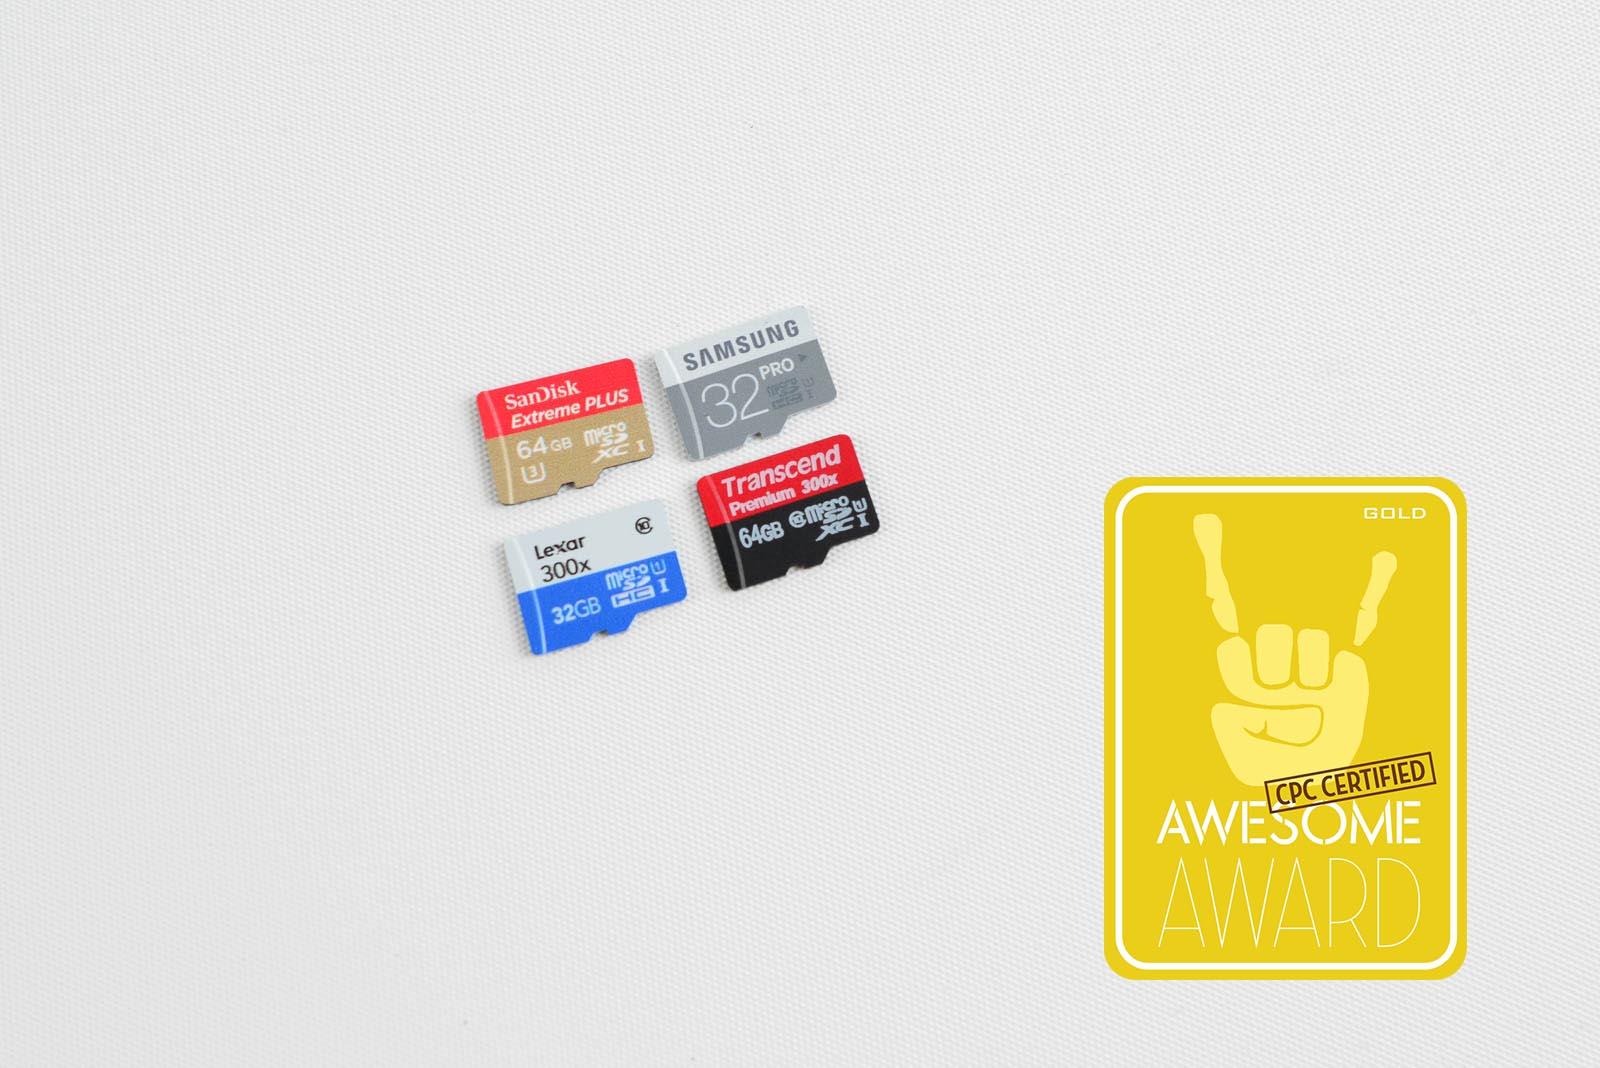 Best Microsd Card Review 12 Comparison Custom Pc Sandisk Extreme 32gb Smartphone Roundup 2015 Feat Samsung